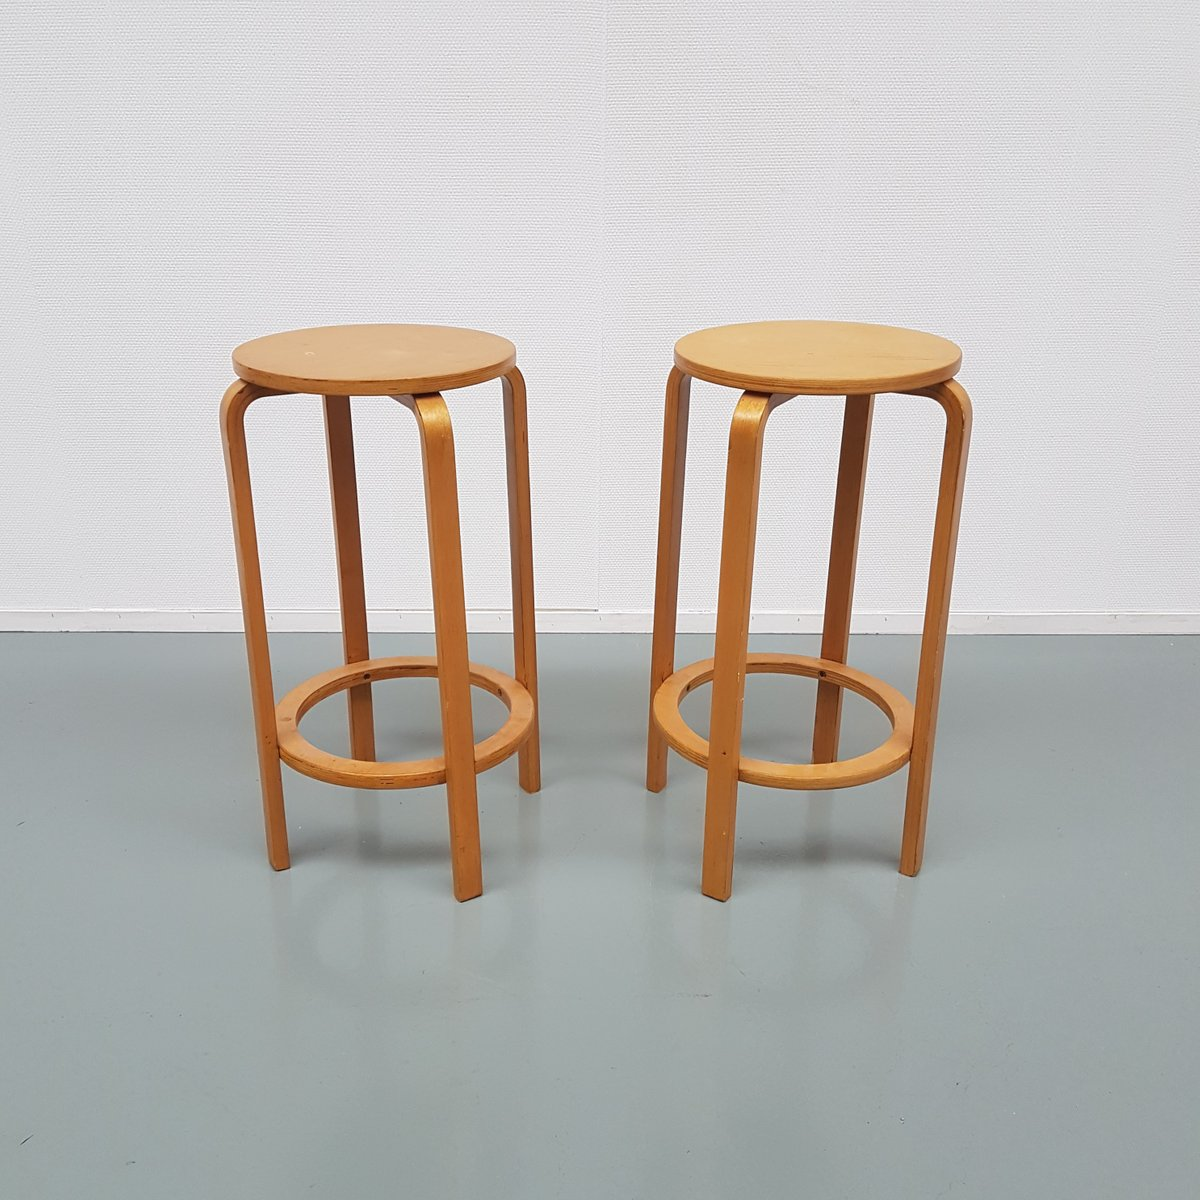 Model 64 Barstool By Alvar Aalto For Artek 1940s For Sale